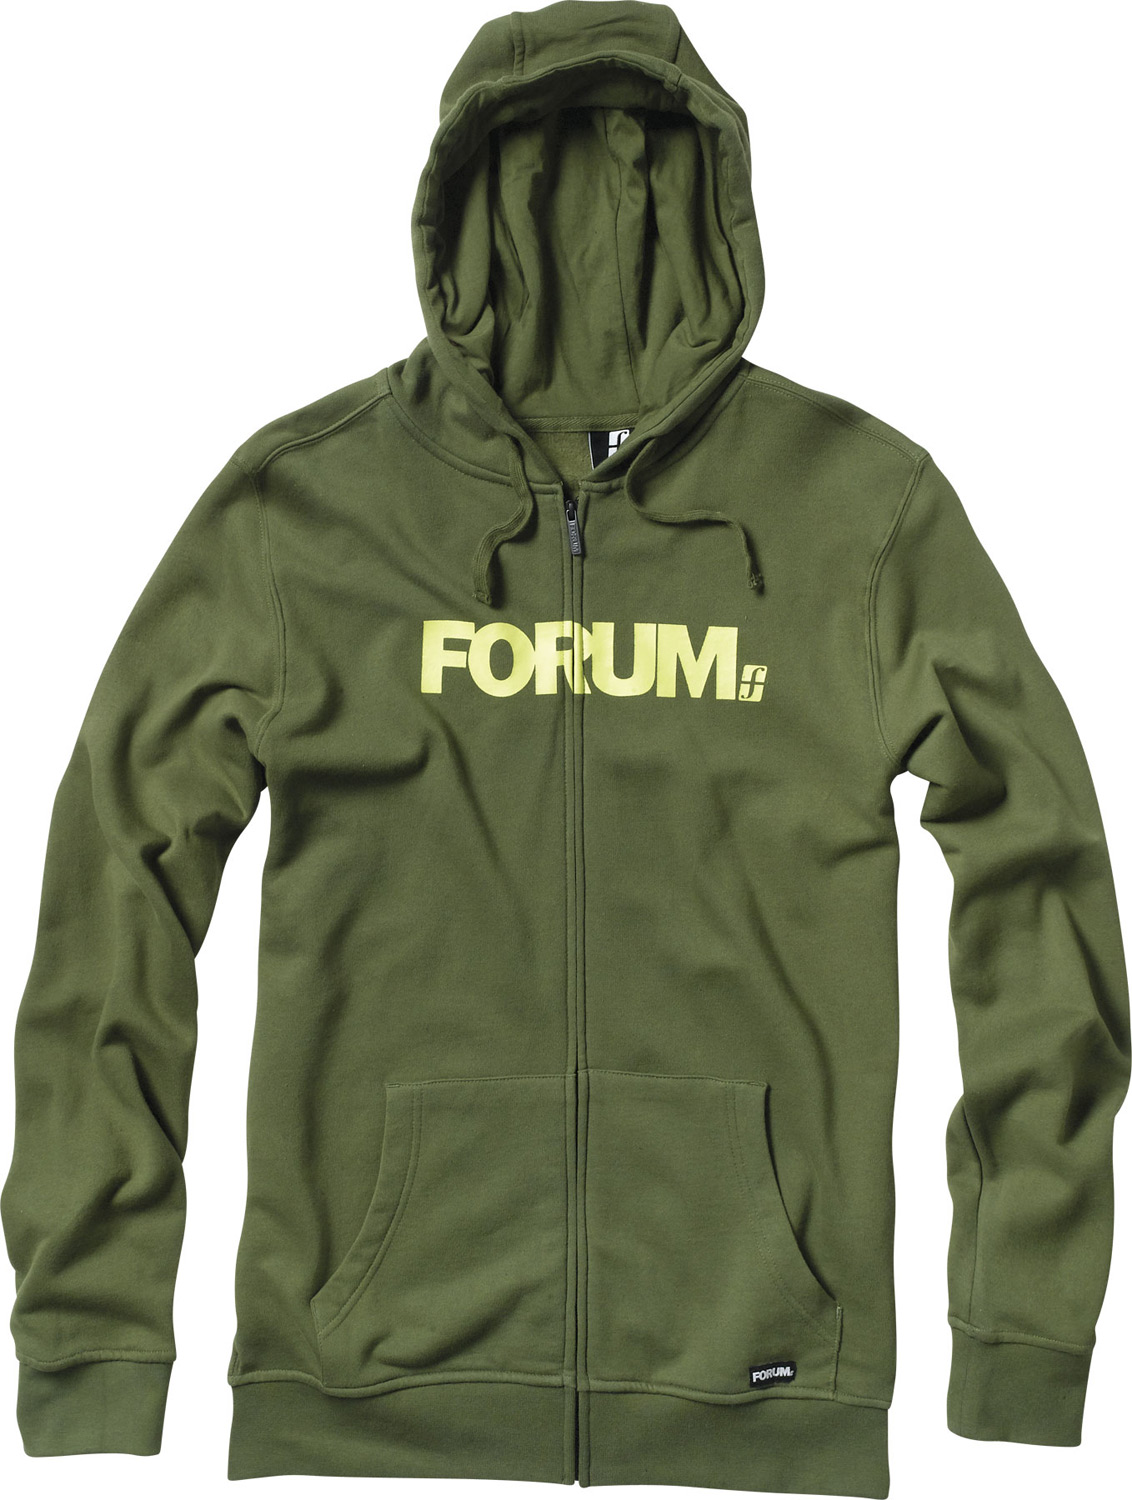 Key Features of the Forum Werdmark Full Zip Hoodie: Full-zip hooded fleece Regular fit 80% cotton, 20% polyester, 300 g Screen-printed artwork - $27.95